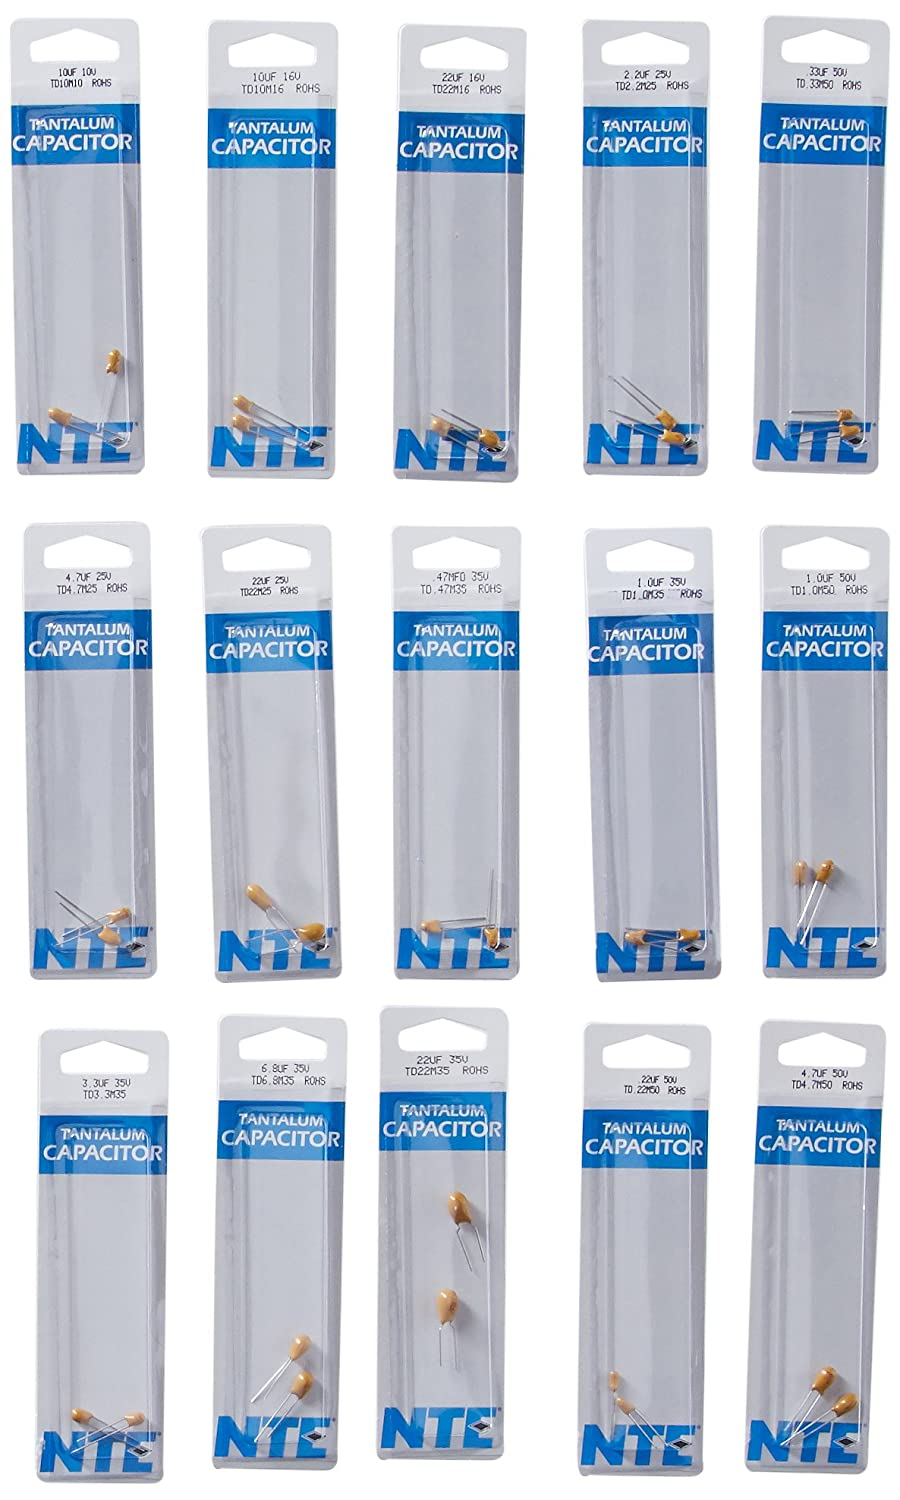 30 Types of 2 Each Inc. NTE Electronics CK-04 Tantalum Capacitor Kit Pre-Packaged Assorted Capacitance 10V To 50V